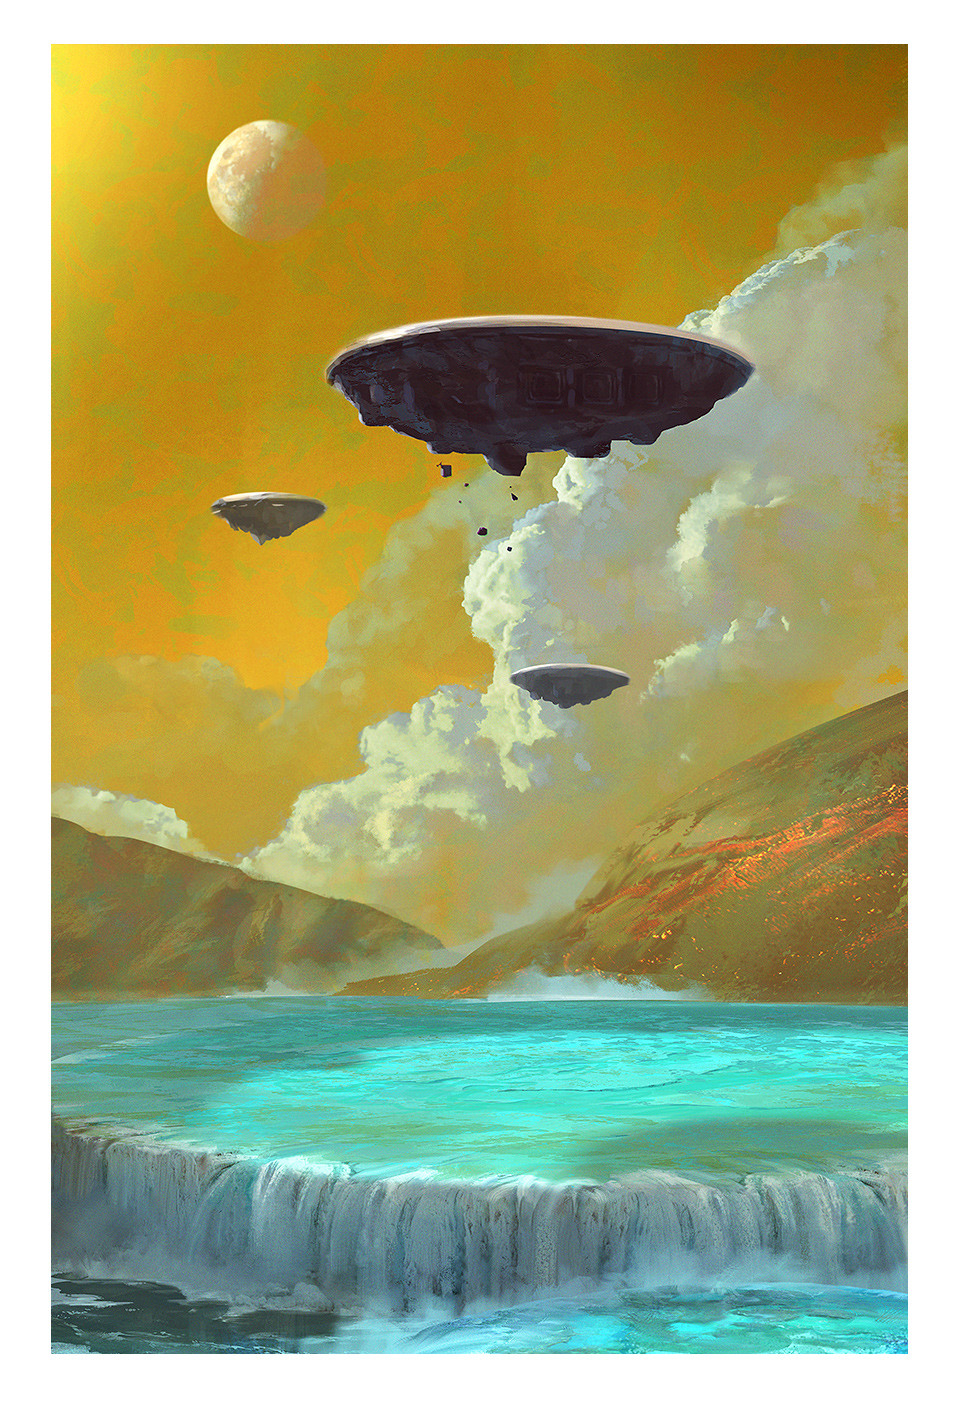 Andy walsh retrosci fi floaters by andywalsh 1400px3